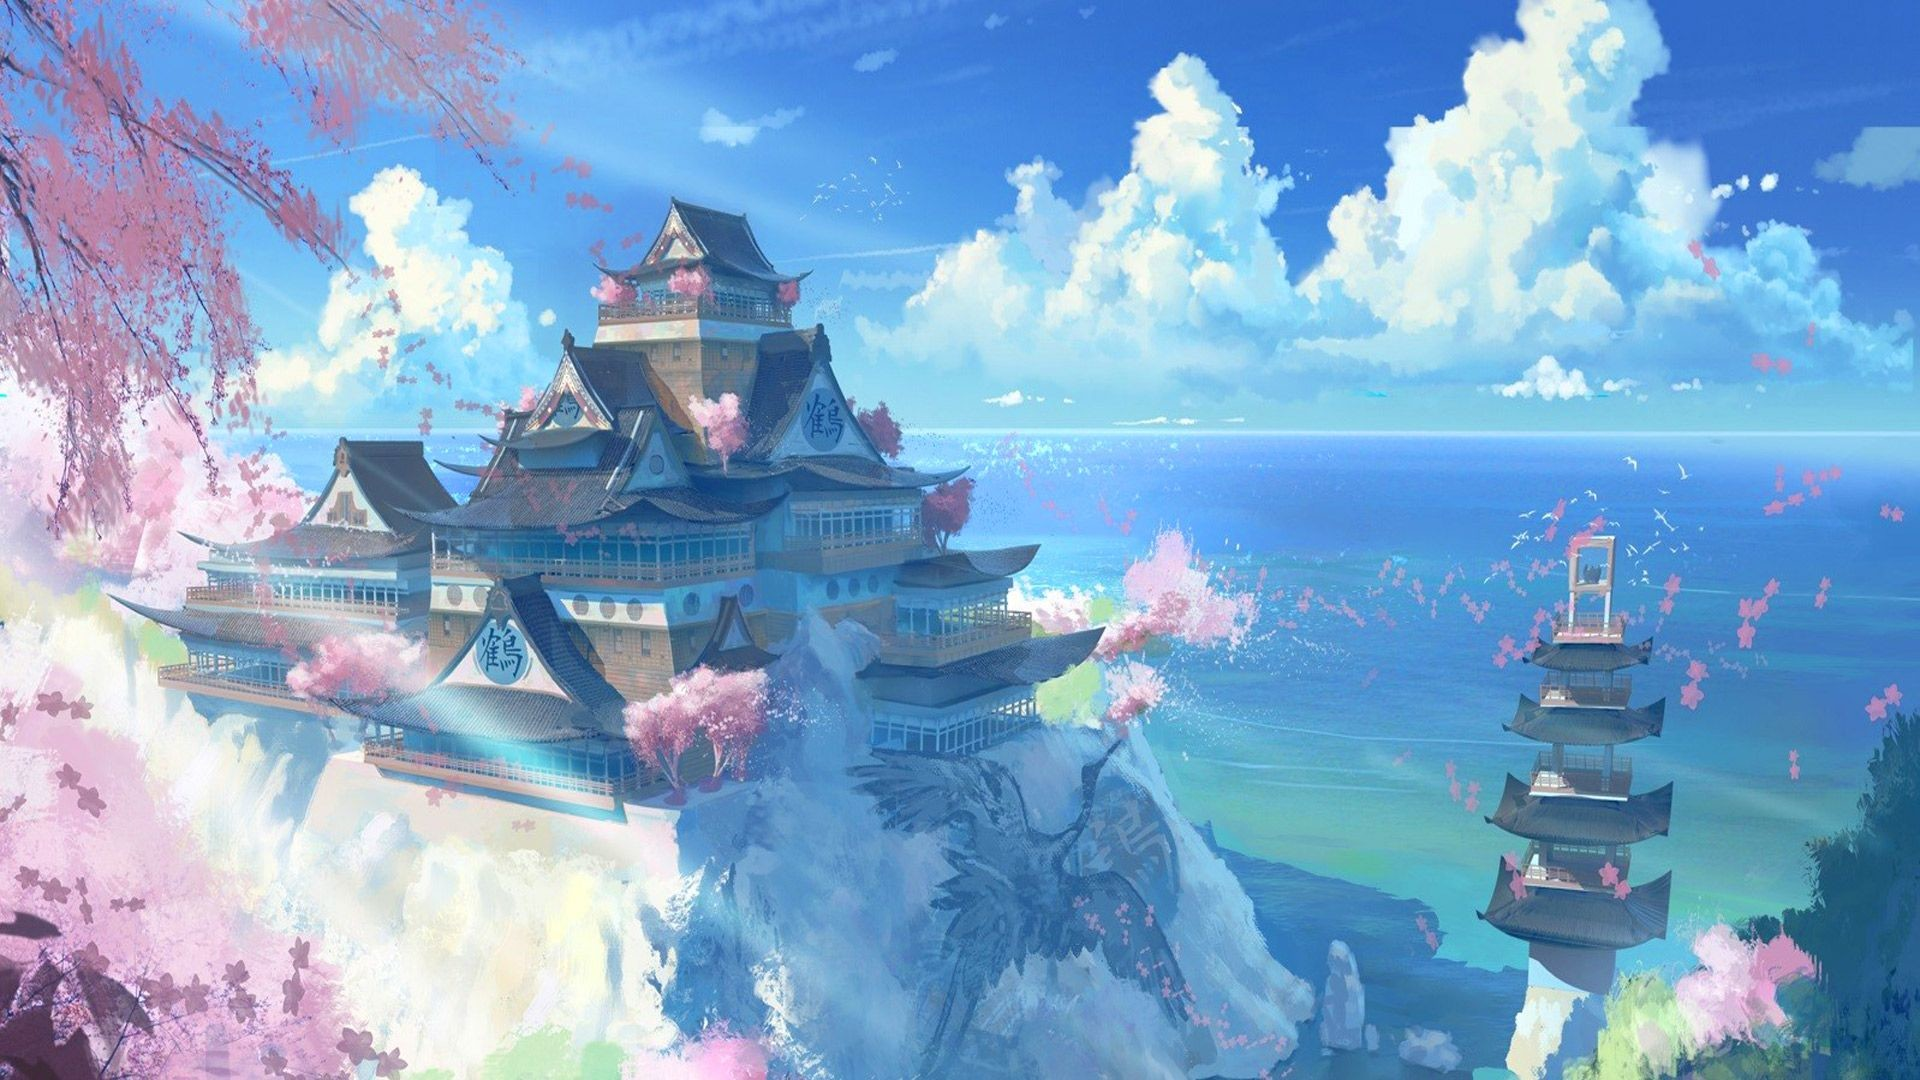 Res: 1920x1080, Free Japan Temple Scenery Anime Manga, computer desktop wallpapers,  pictures, images